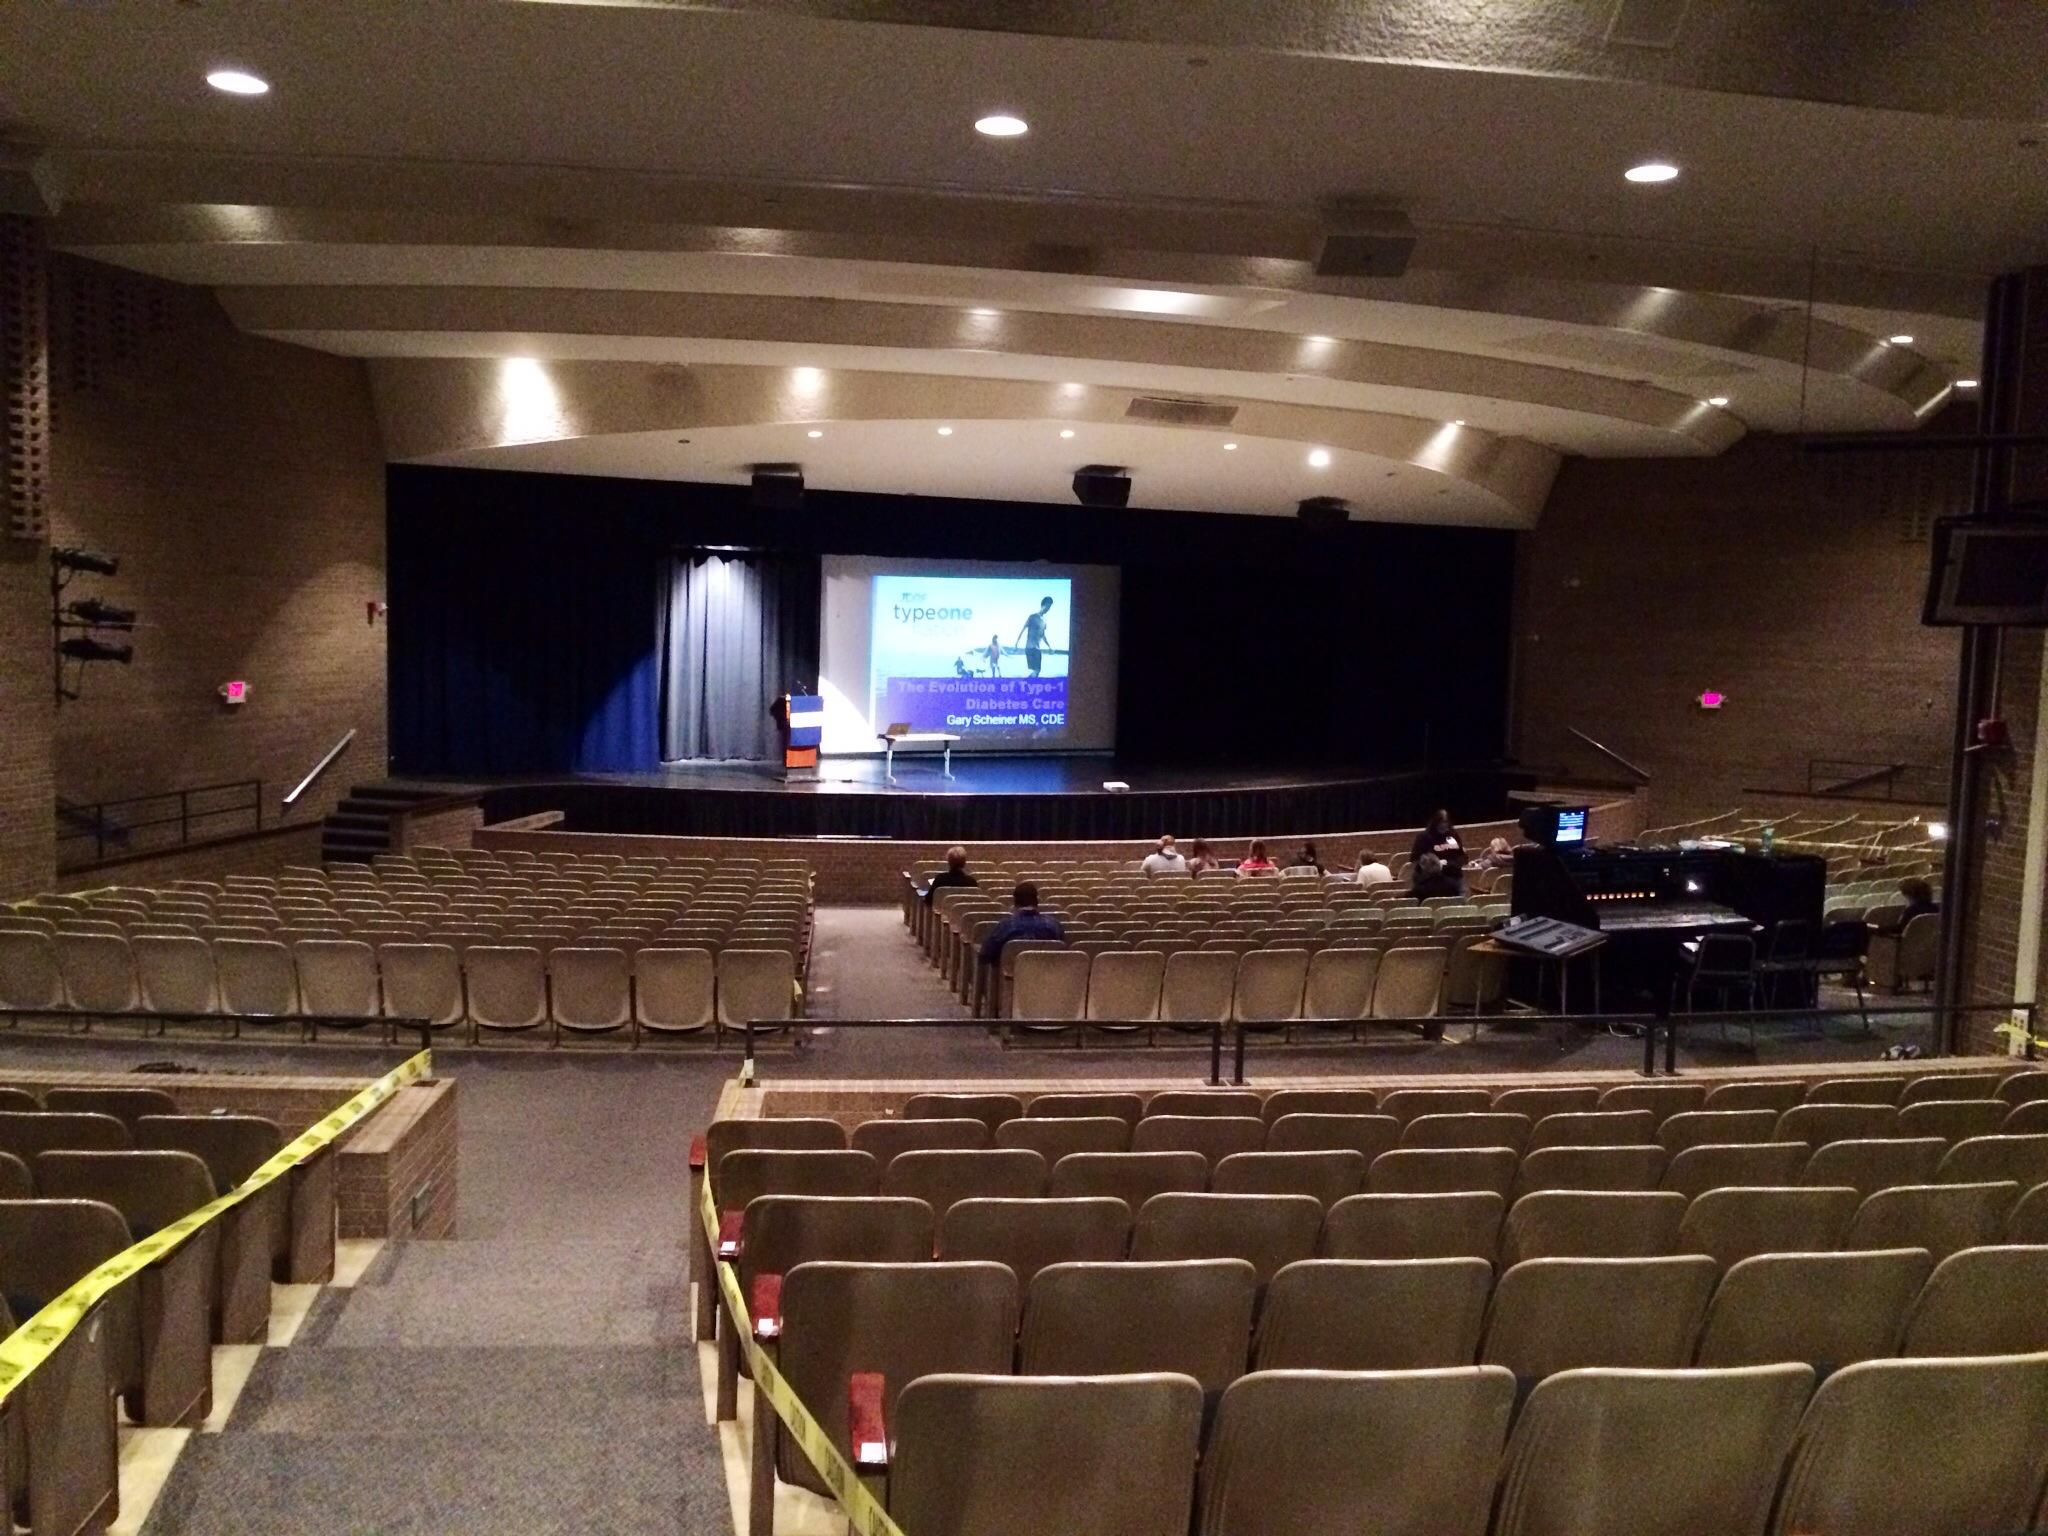 Arriving early: empty auditorium!